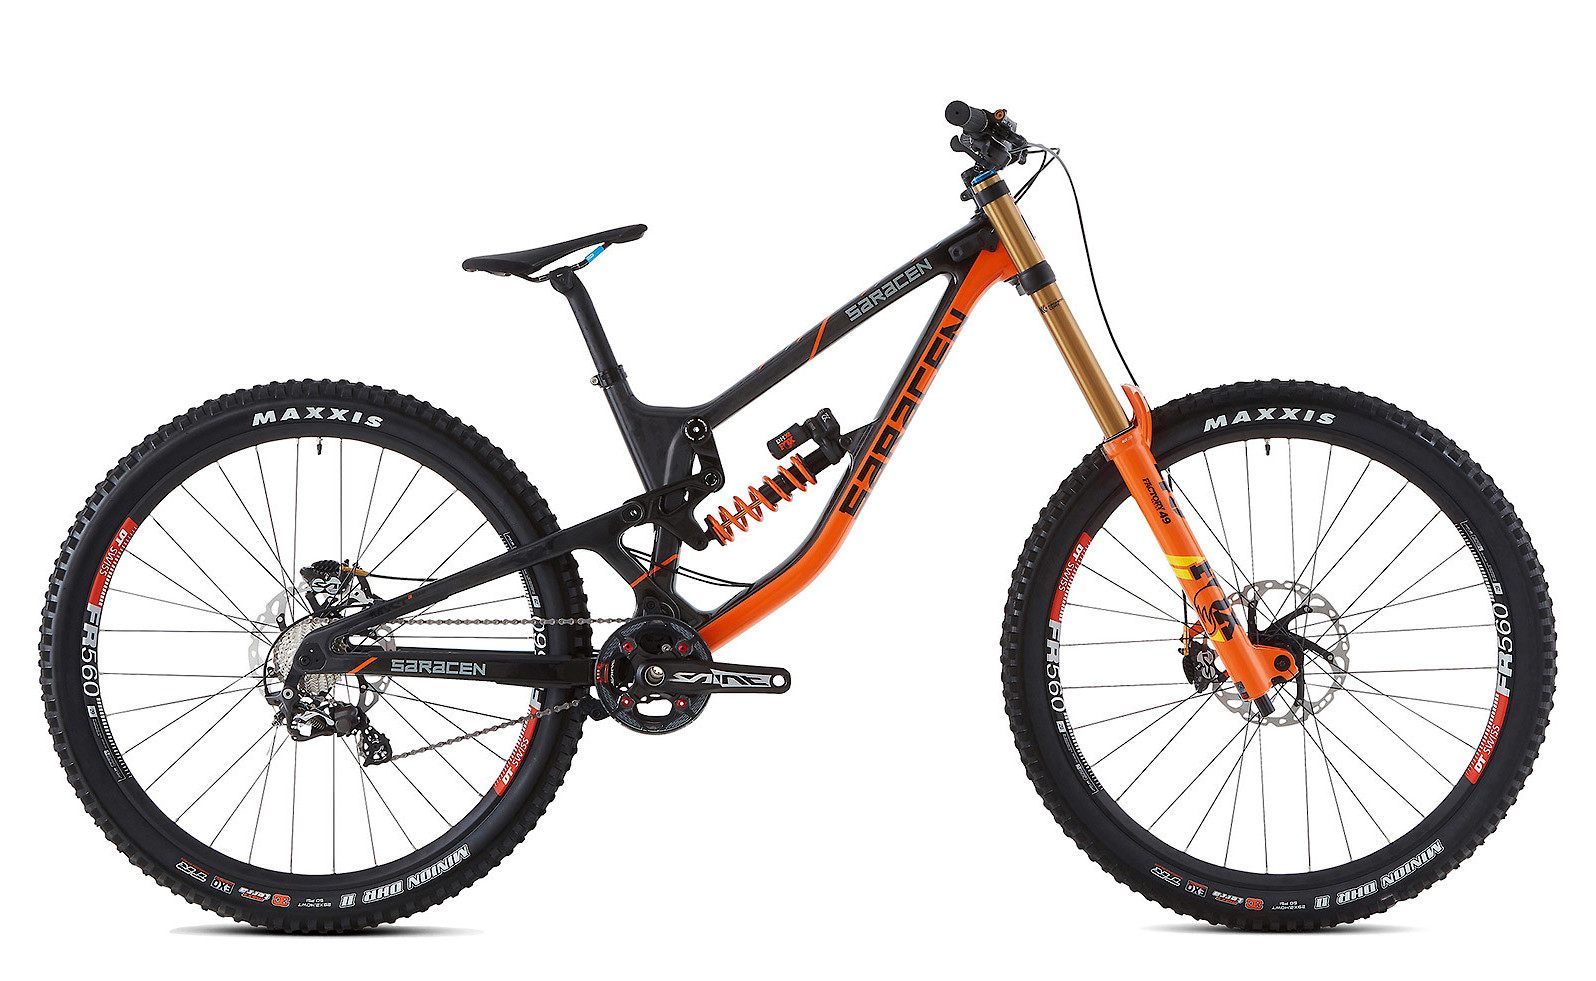 2019 Saracen Myst Team 29 Bike